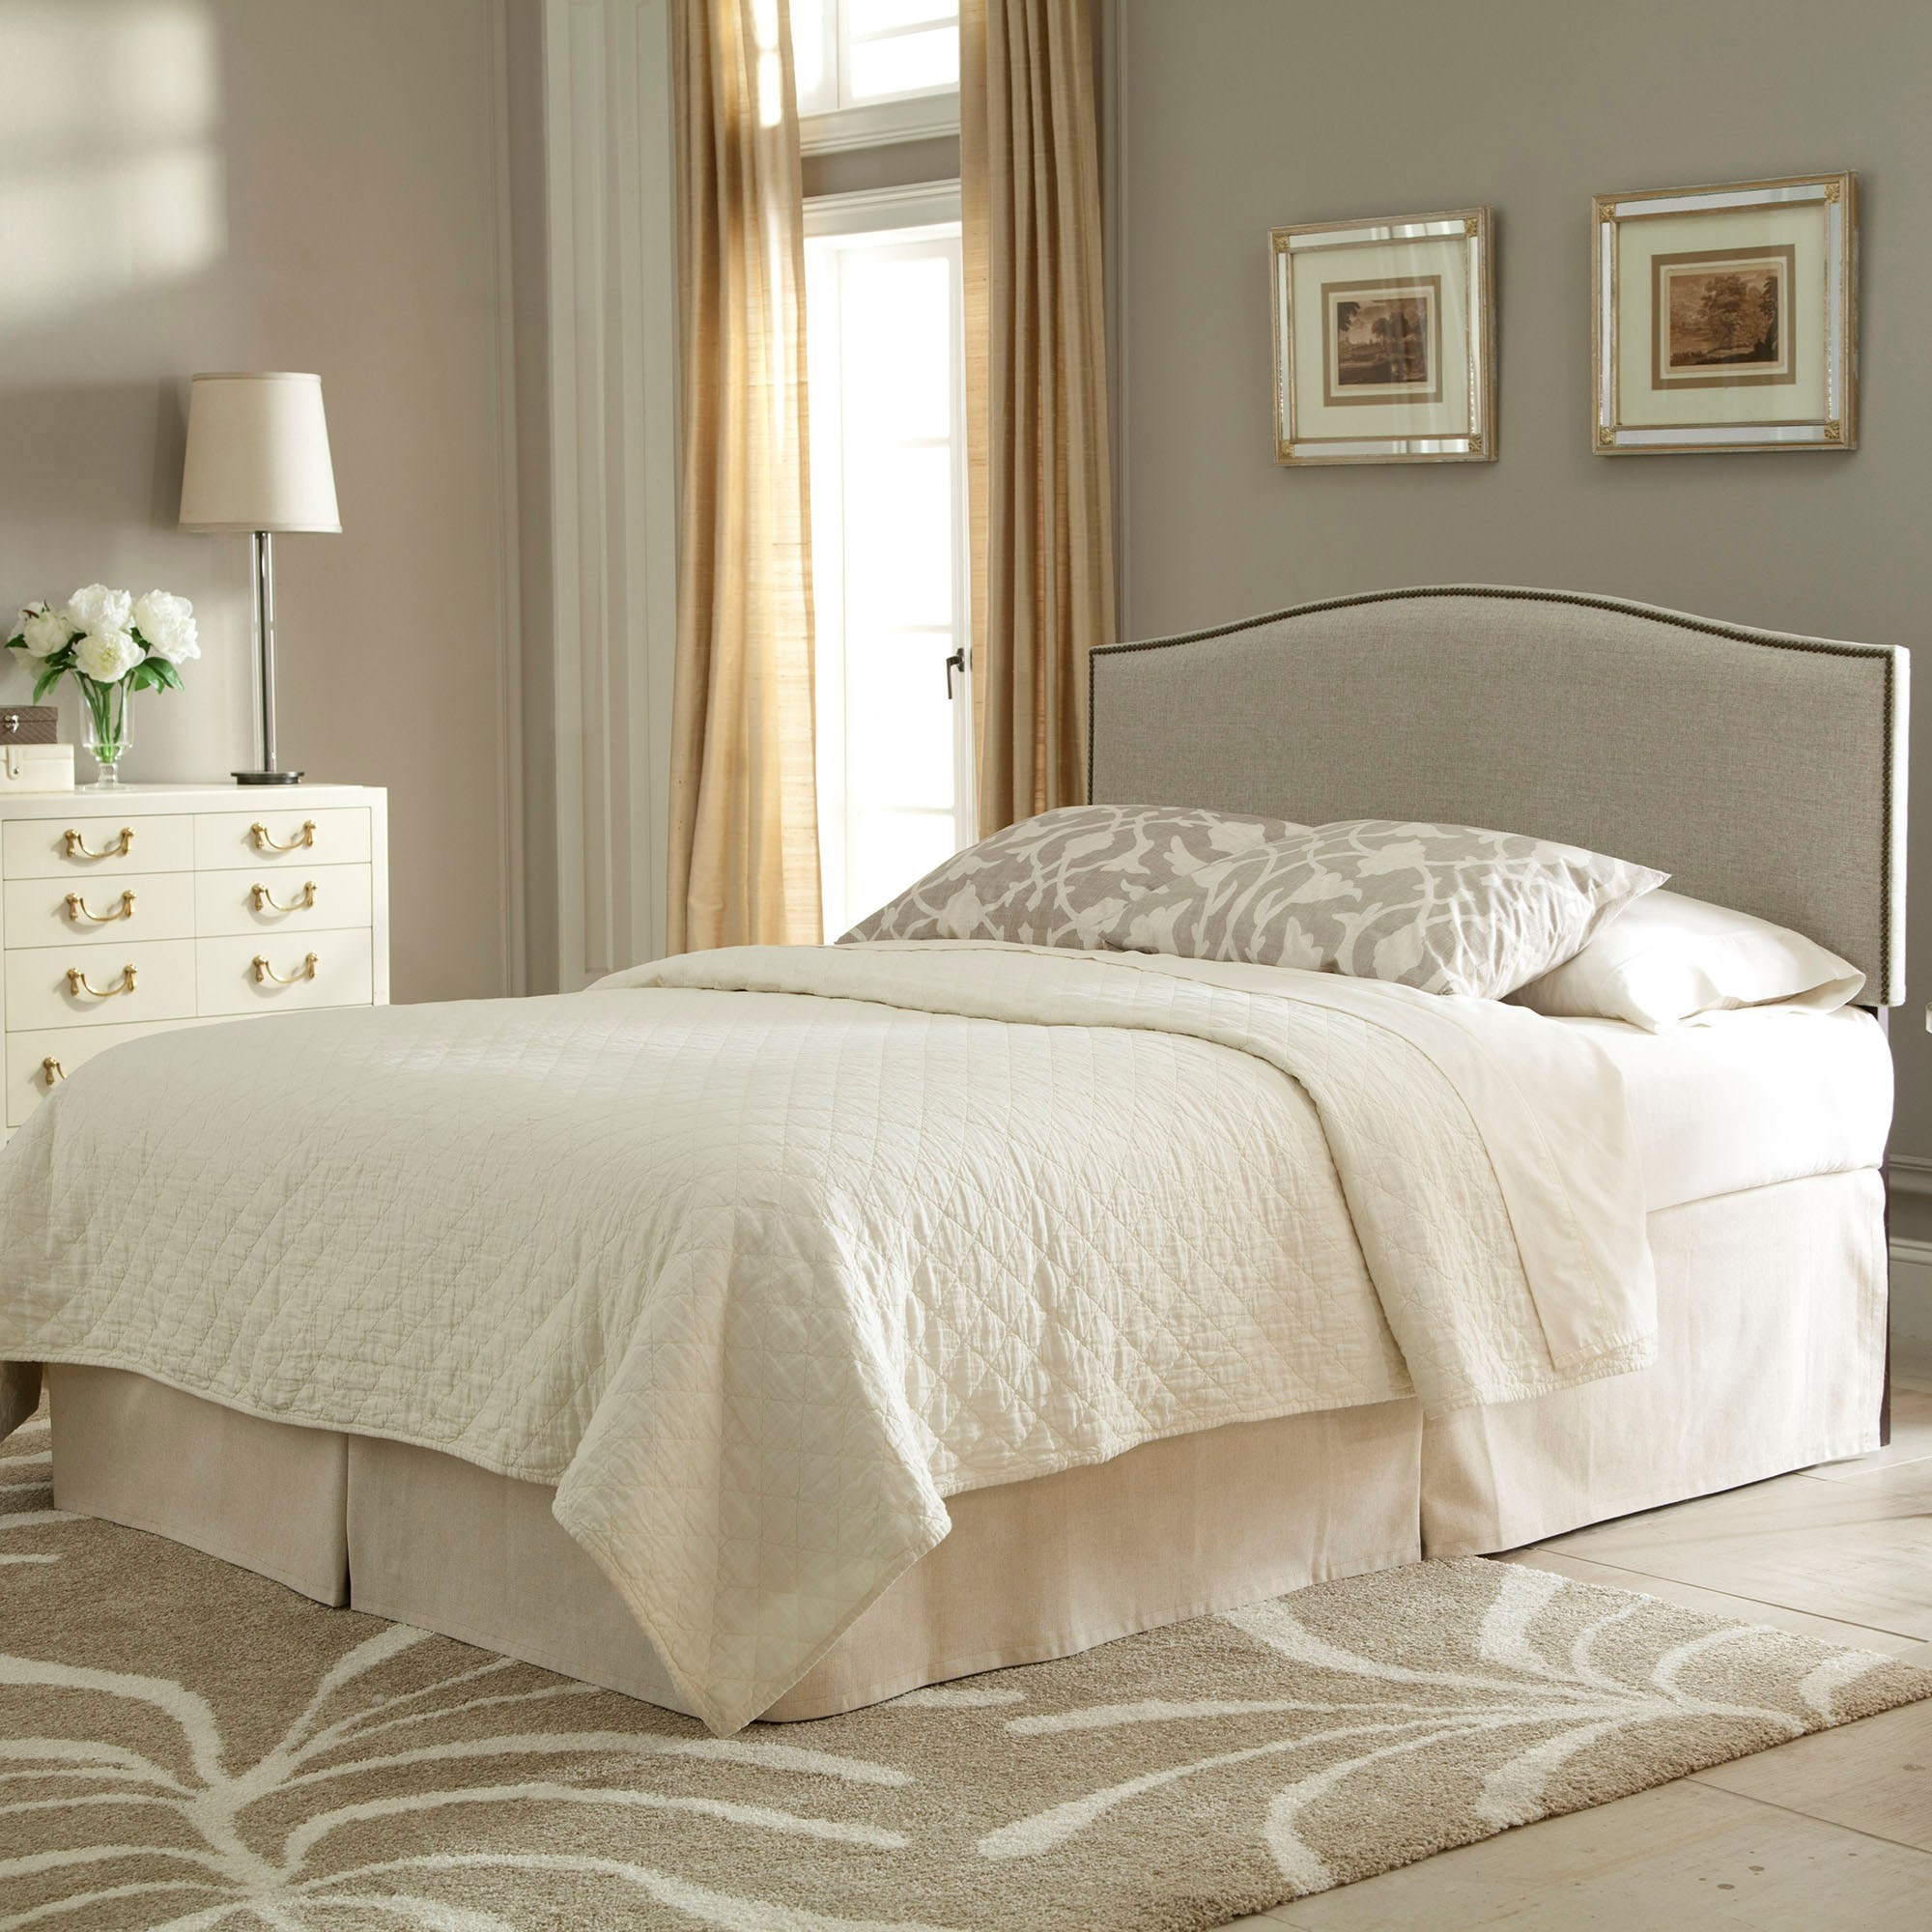 Fashion Bed Group Upholstered Headboards And Beds B